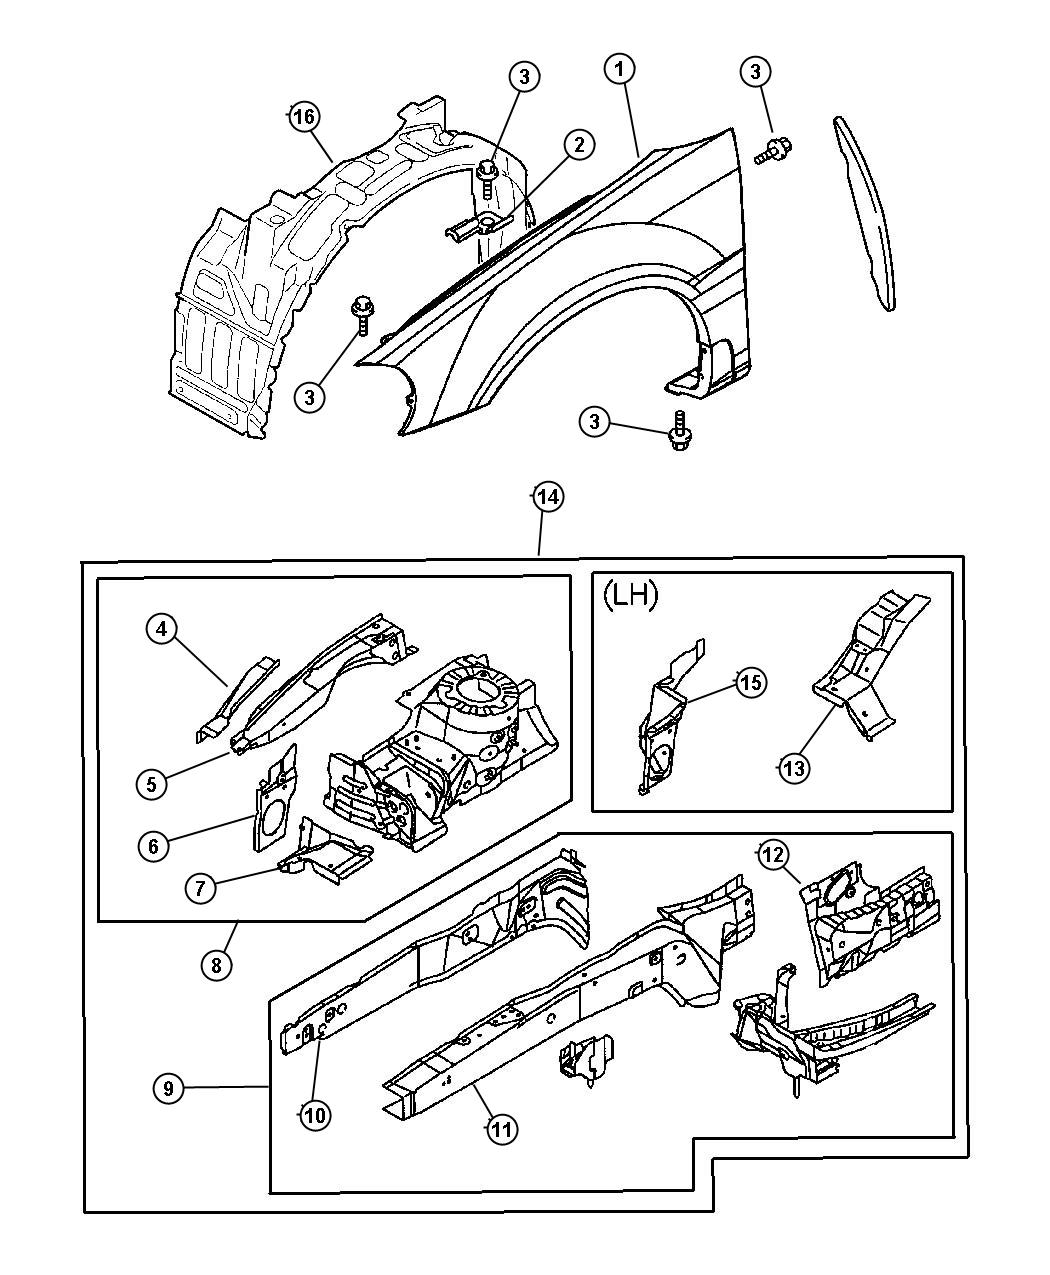 dodge neon rear strut diagram  dodge  free engine image